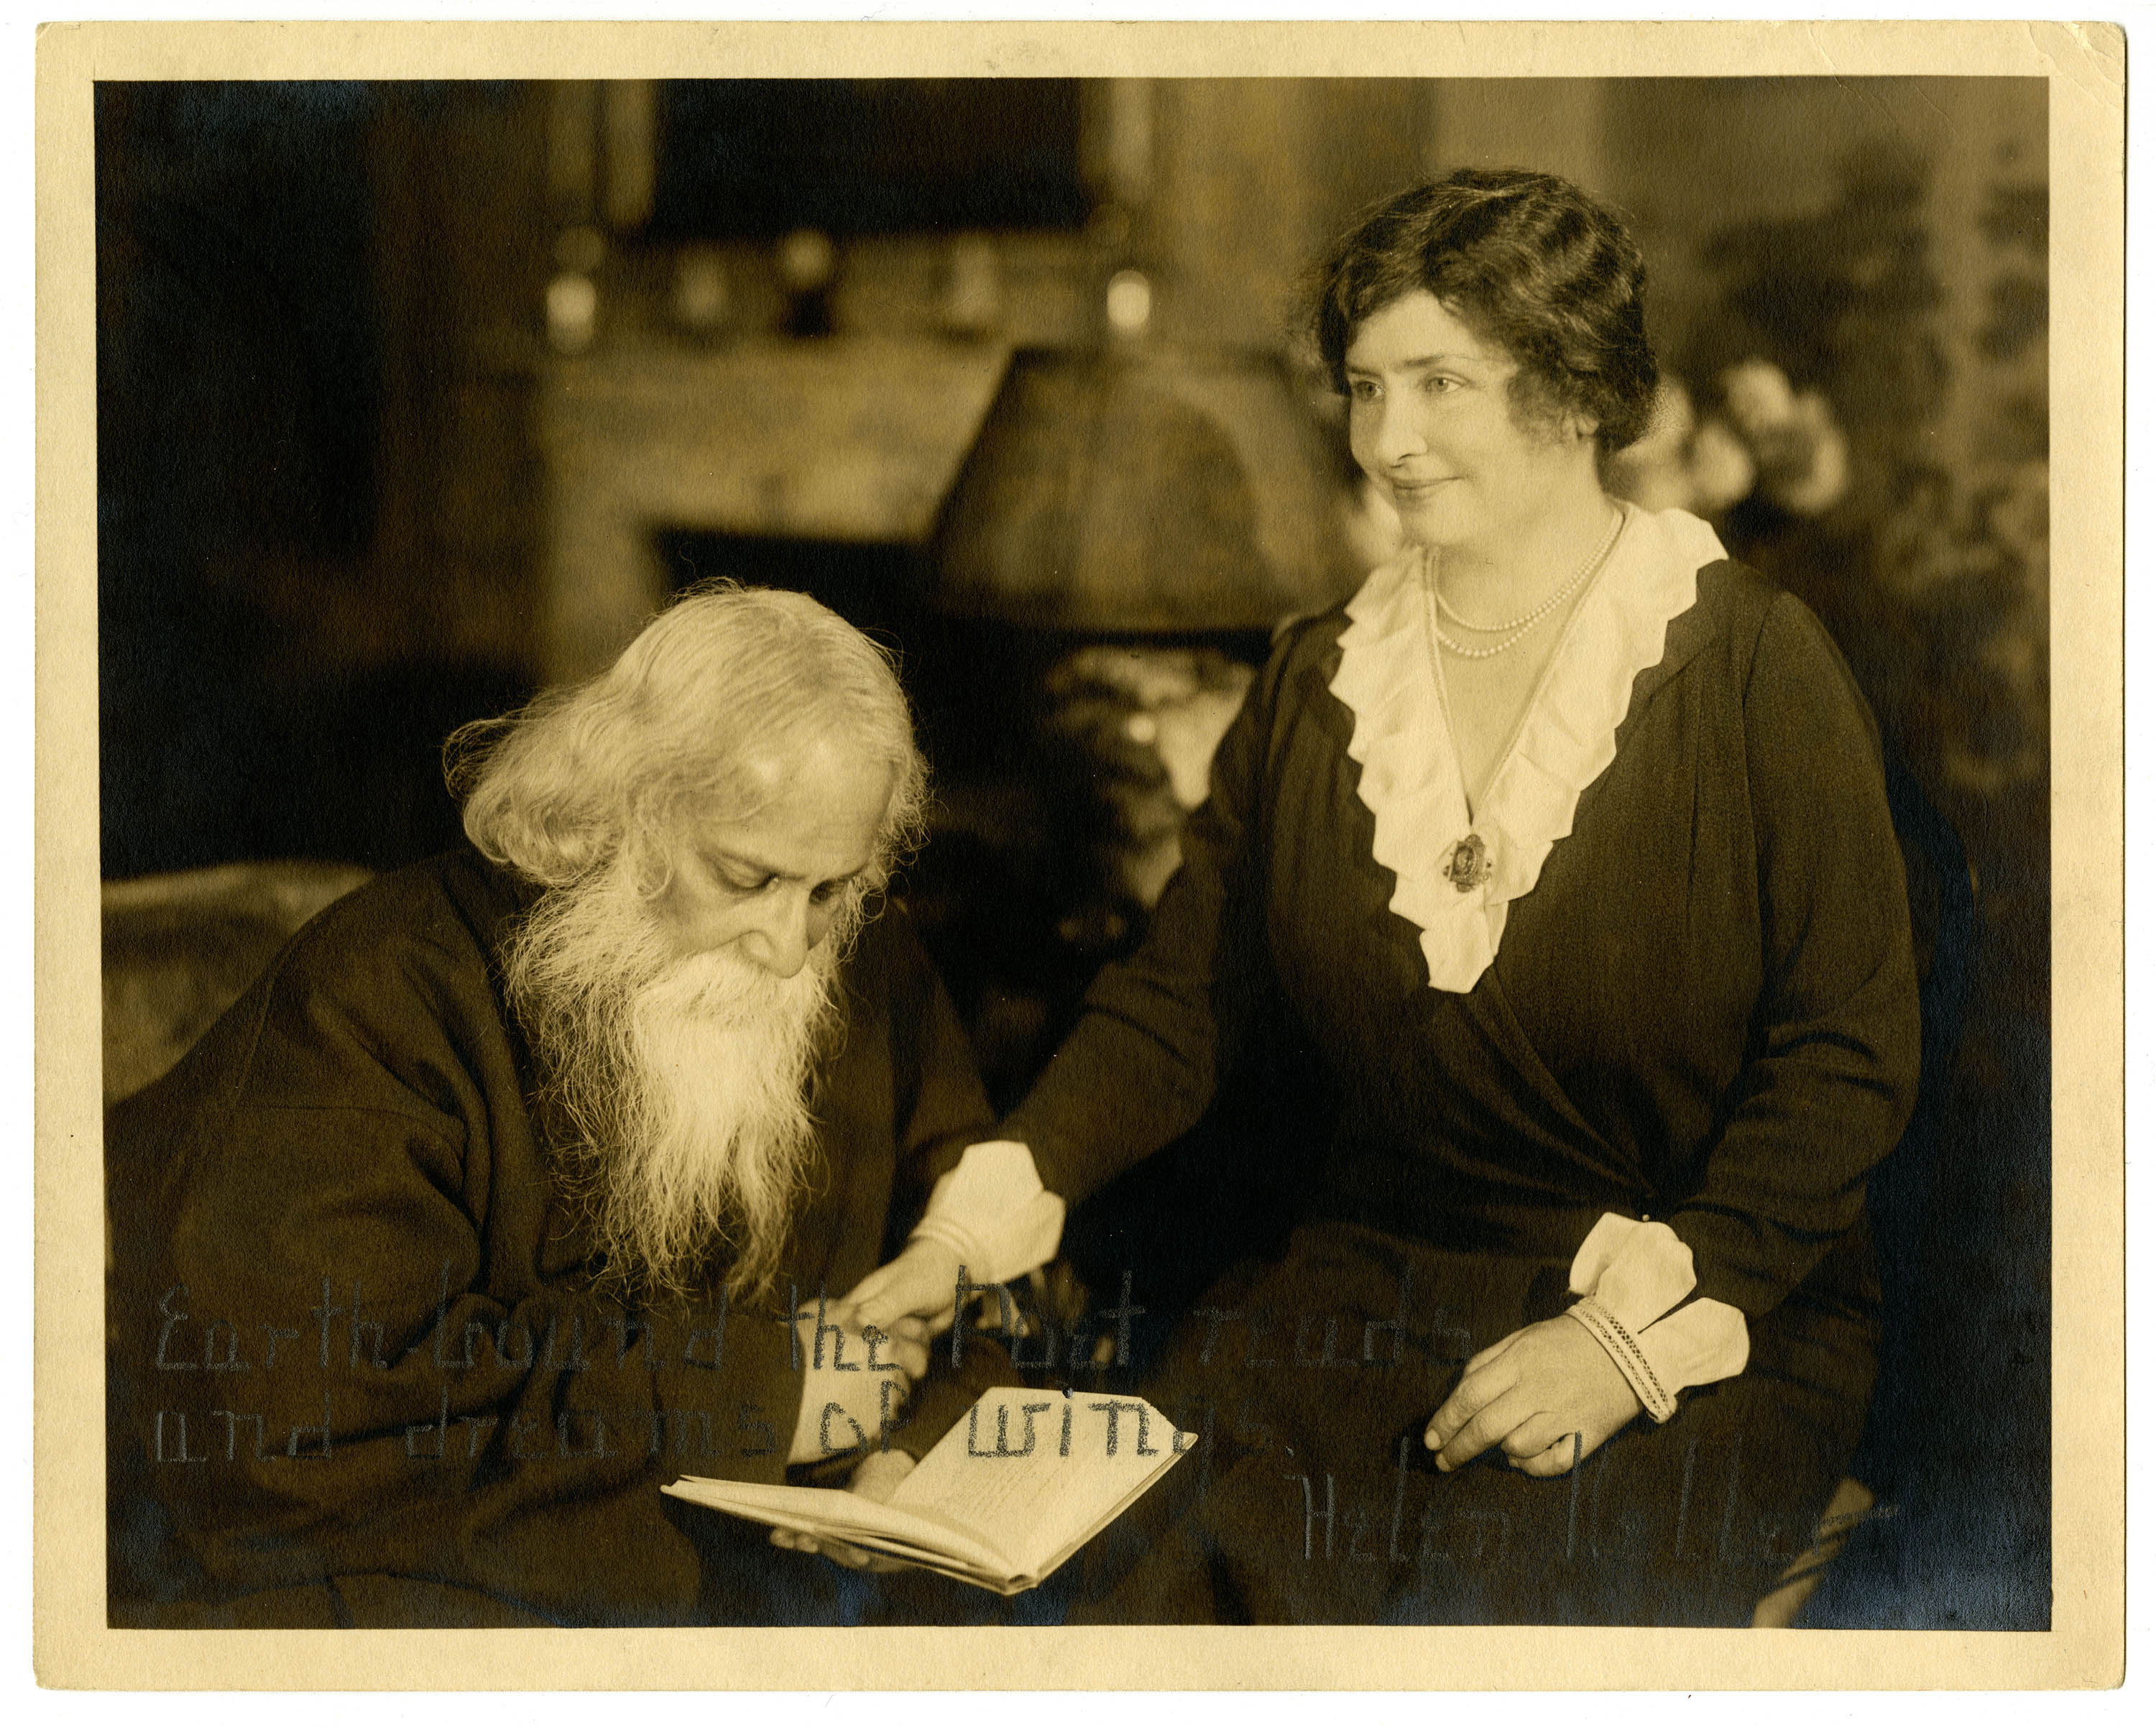 Helen Keller meets with Rabindranath Tagore, 1921 New York, New York